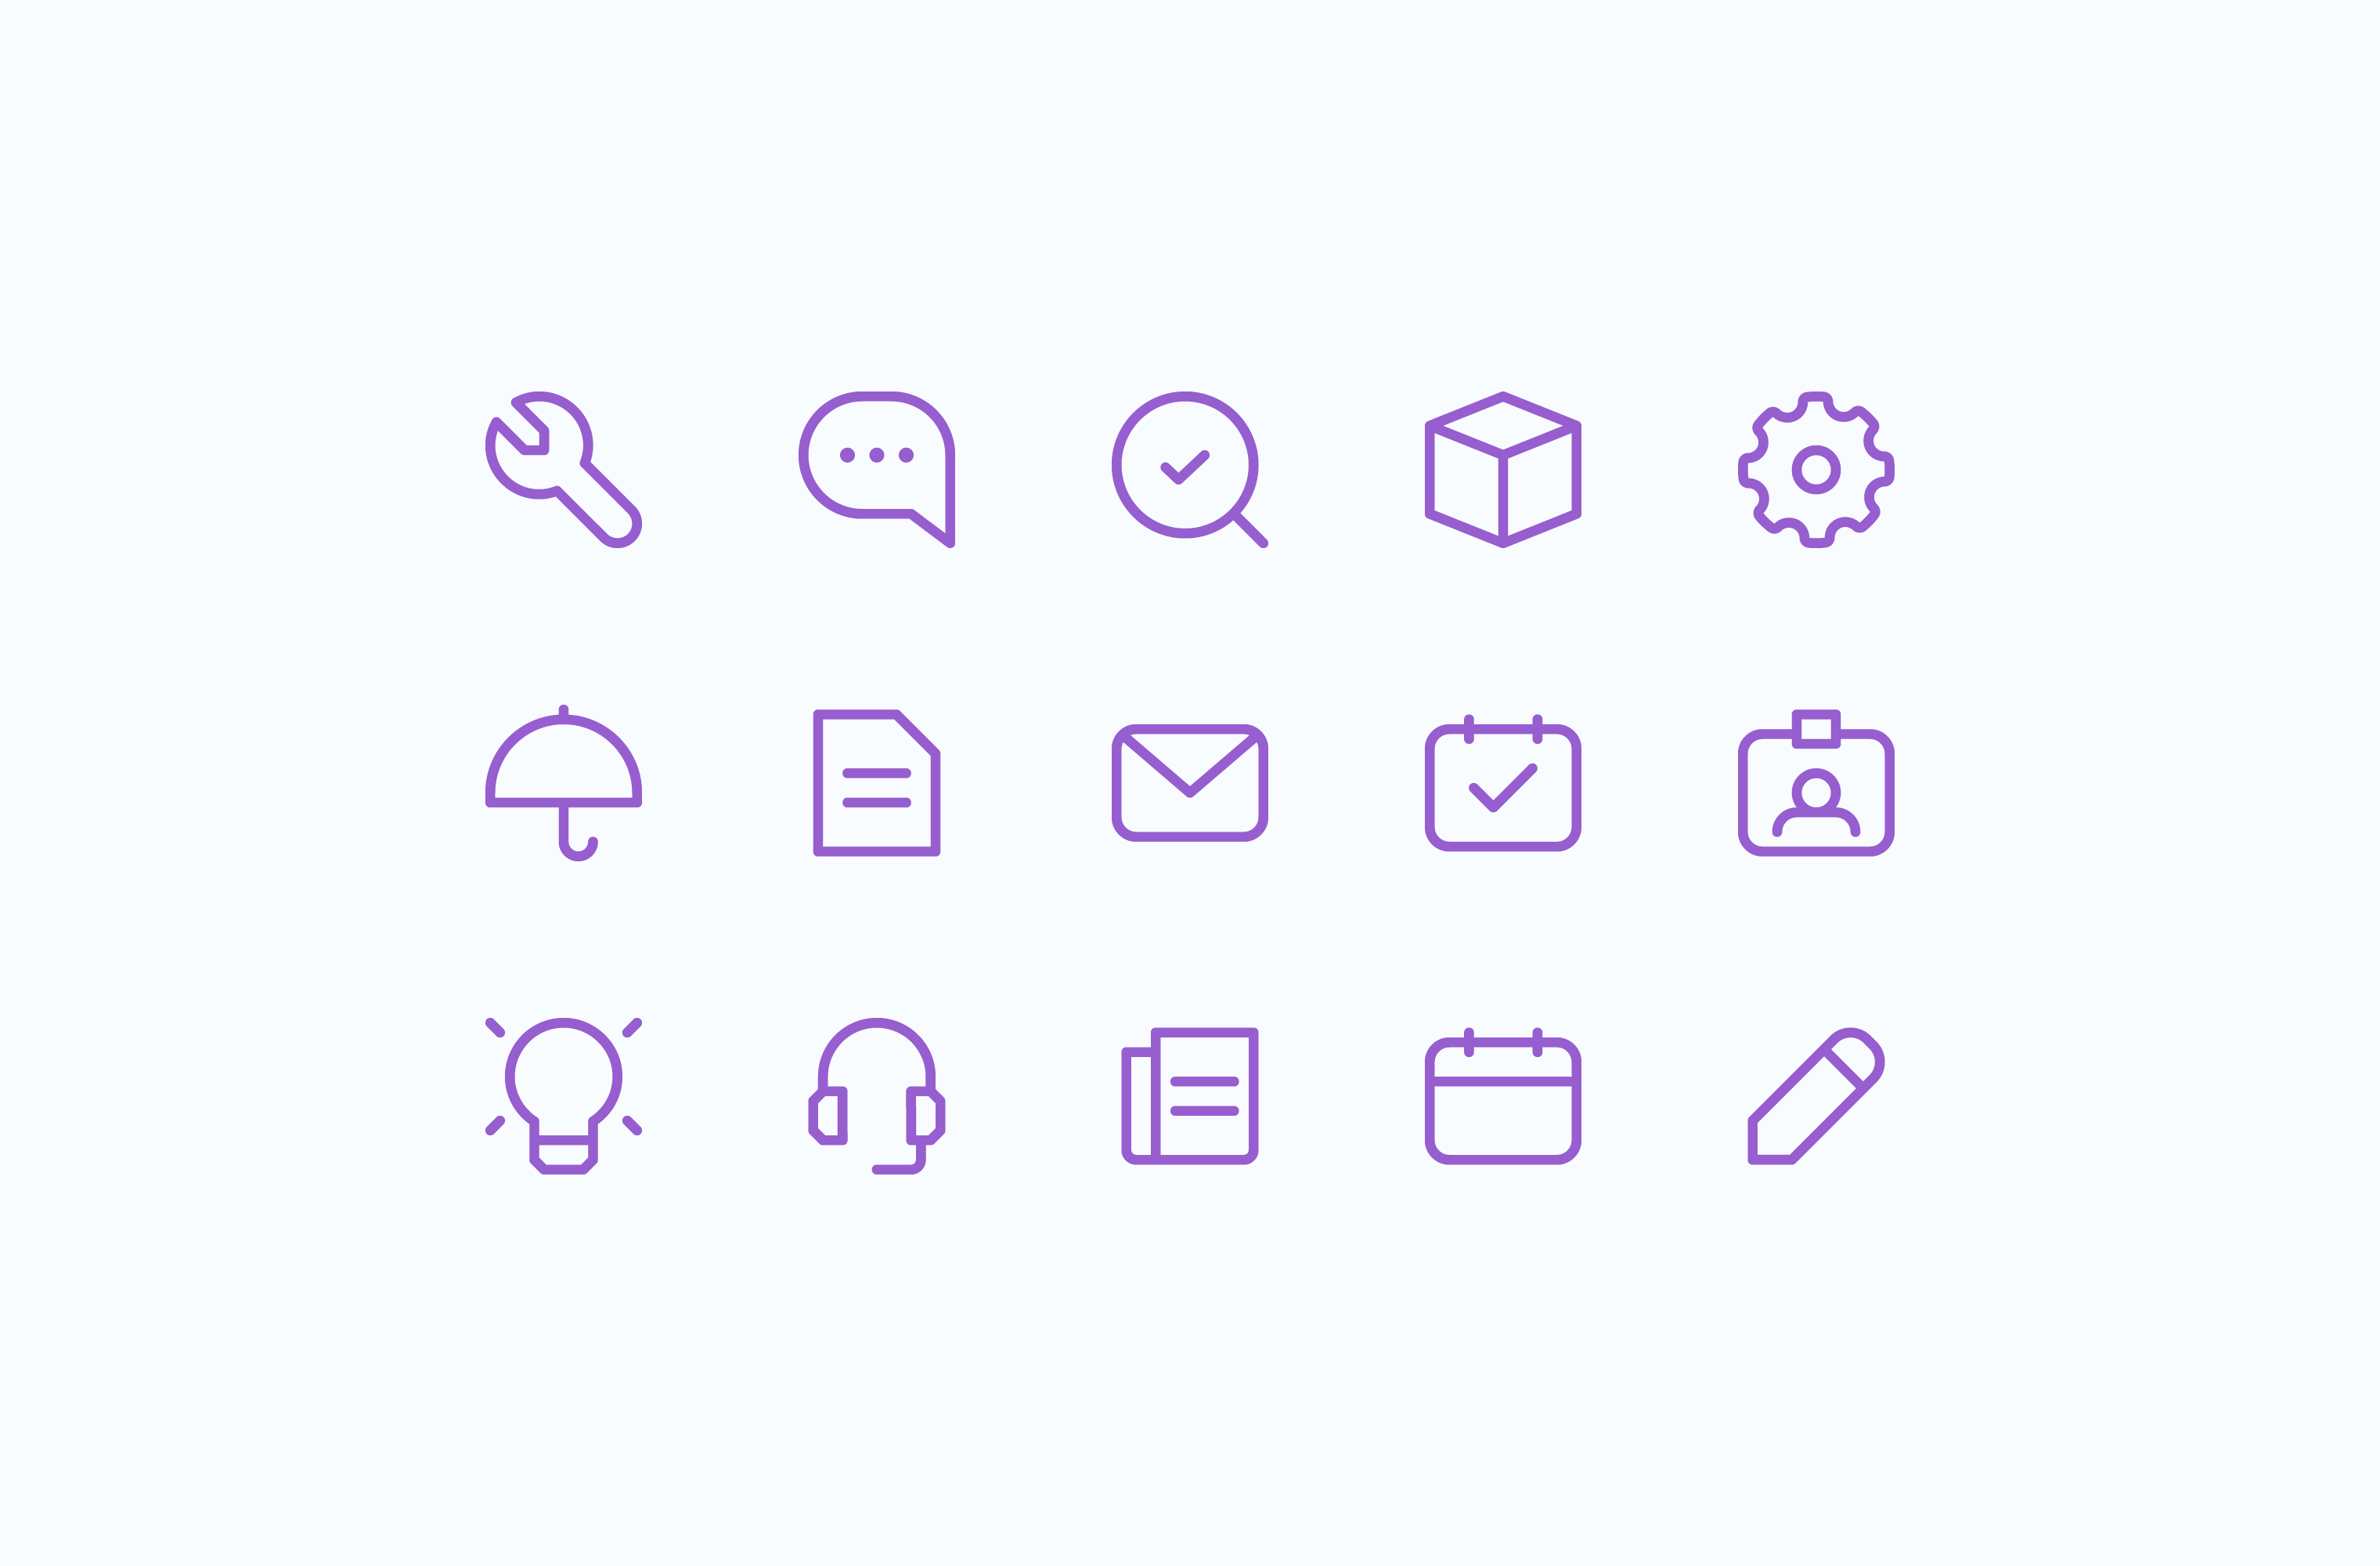 Building Engines product features icon set